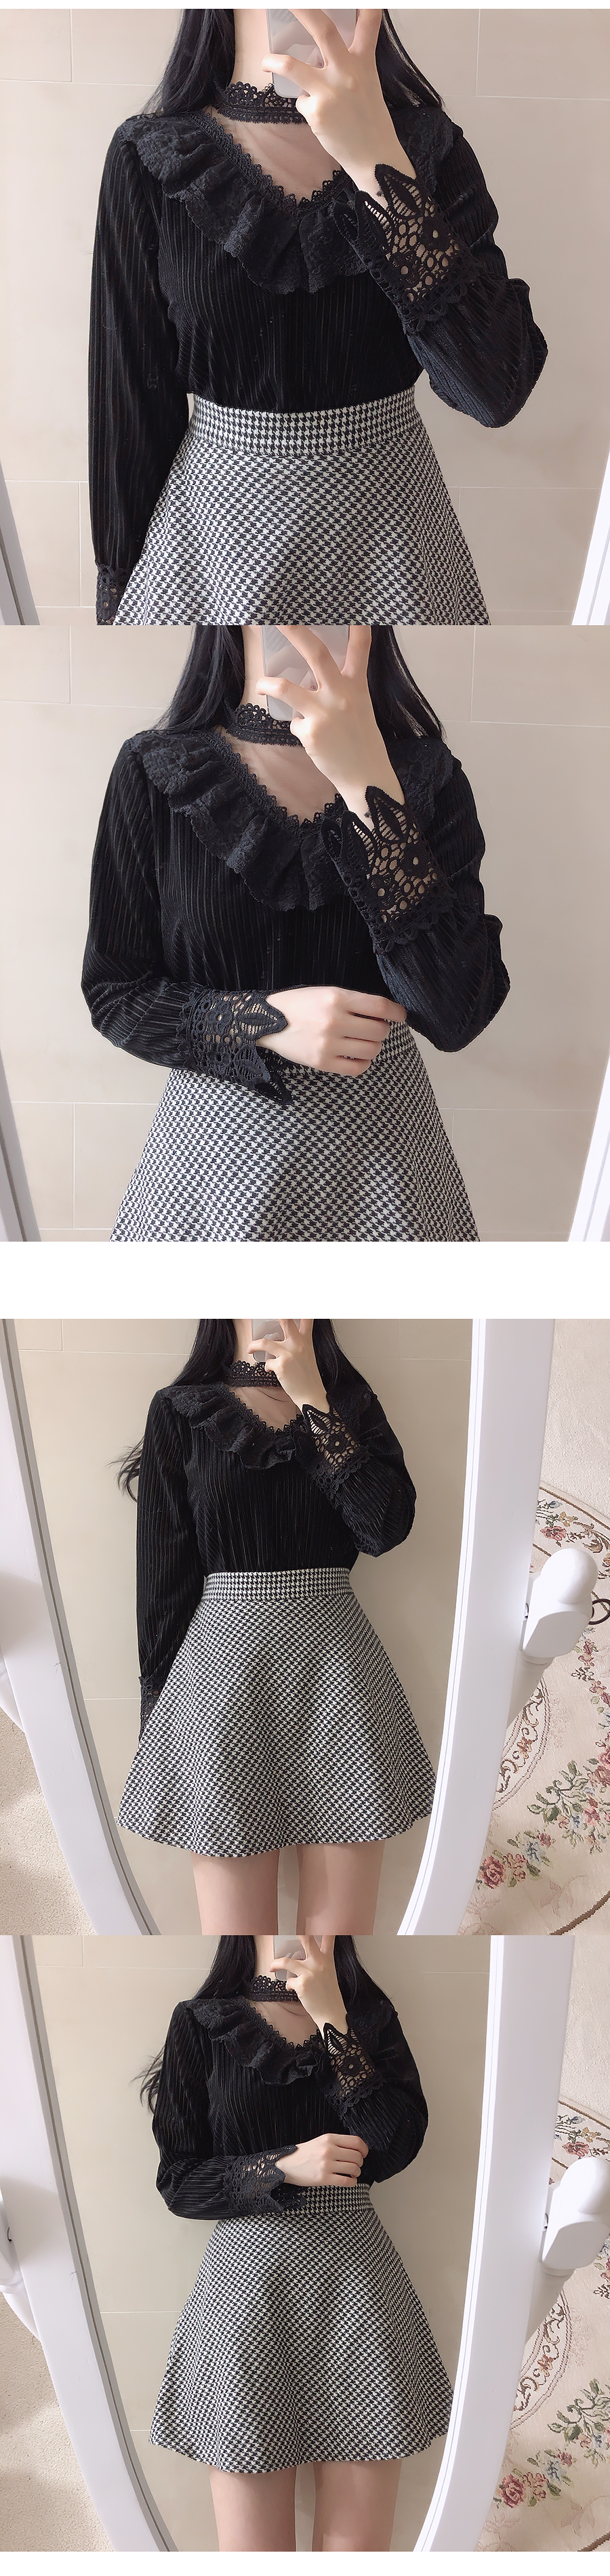 Lace Choker See Through Blouse